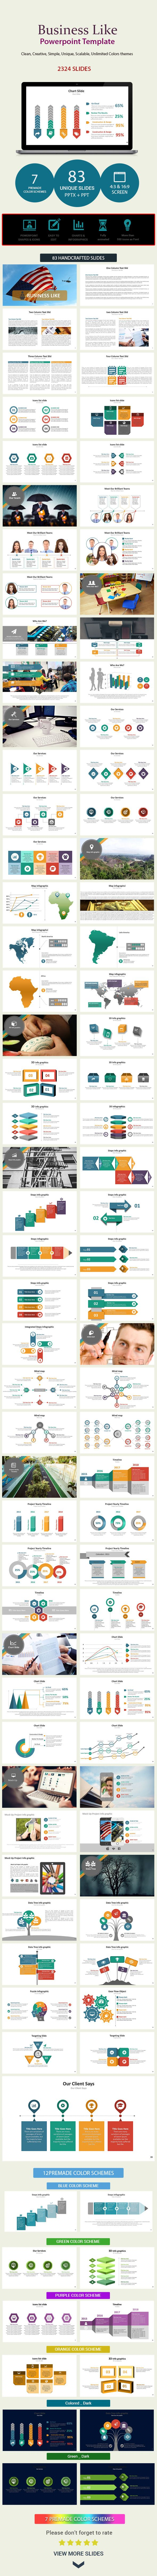 Business Like Presentation Template (PowerPoint Templates)